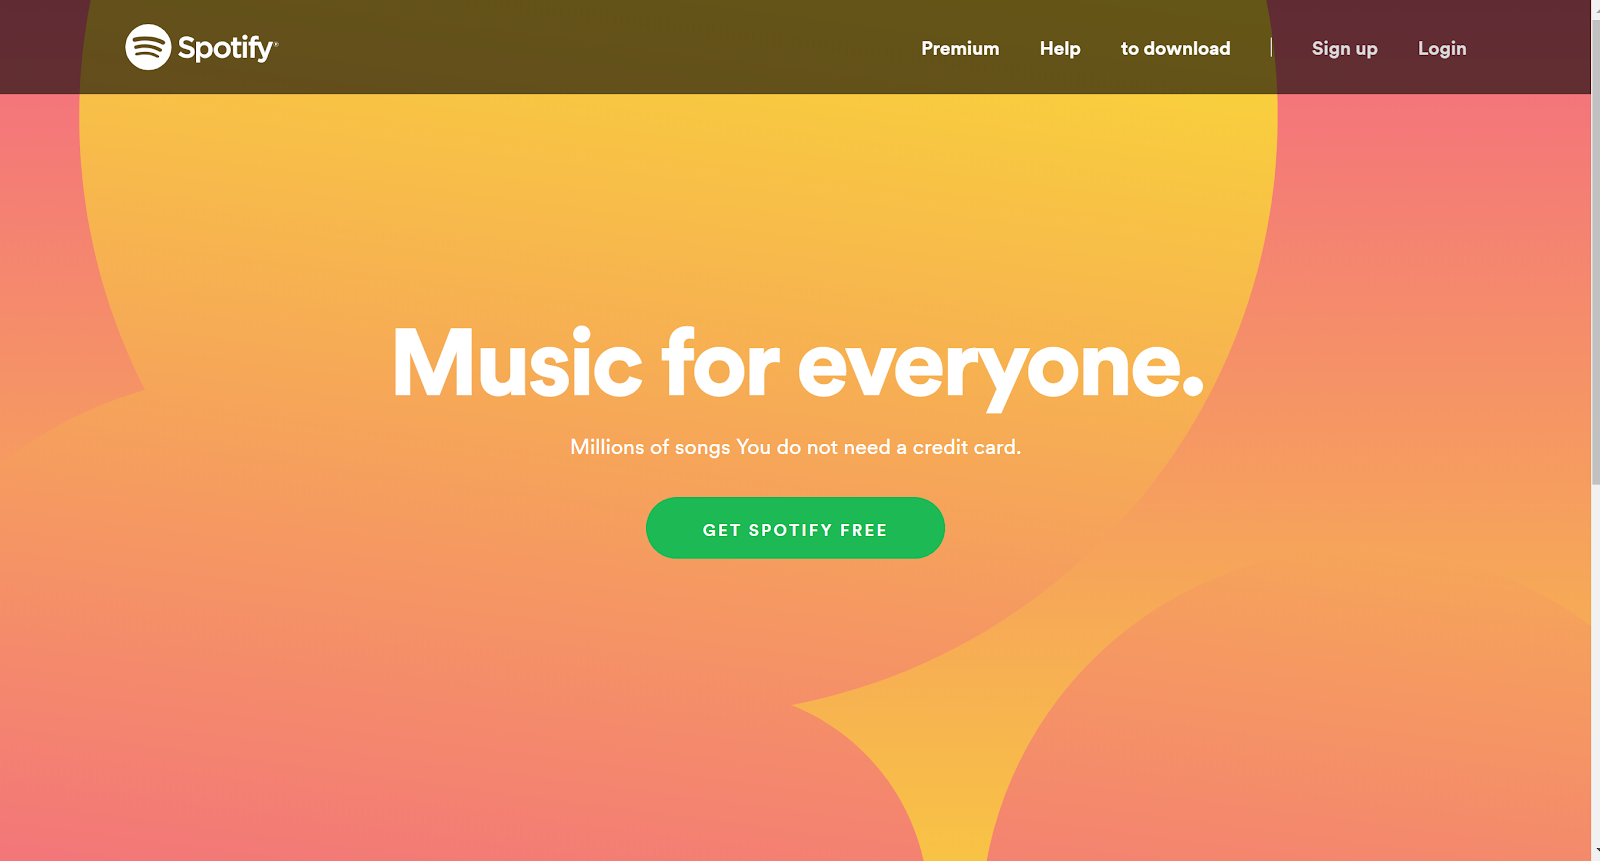 Music for everyone Spotify premium free trial